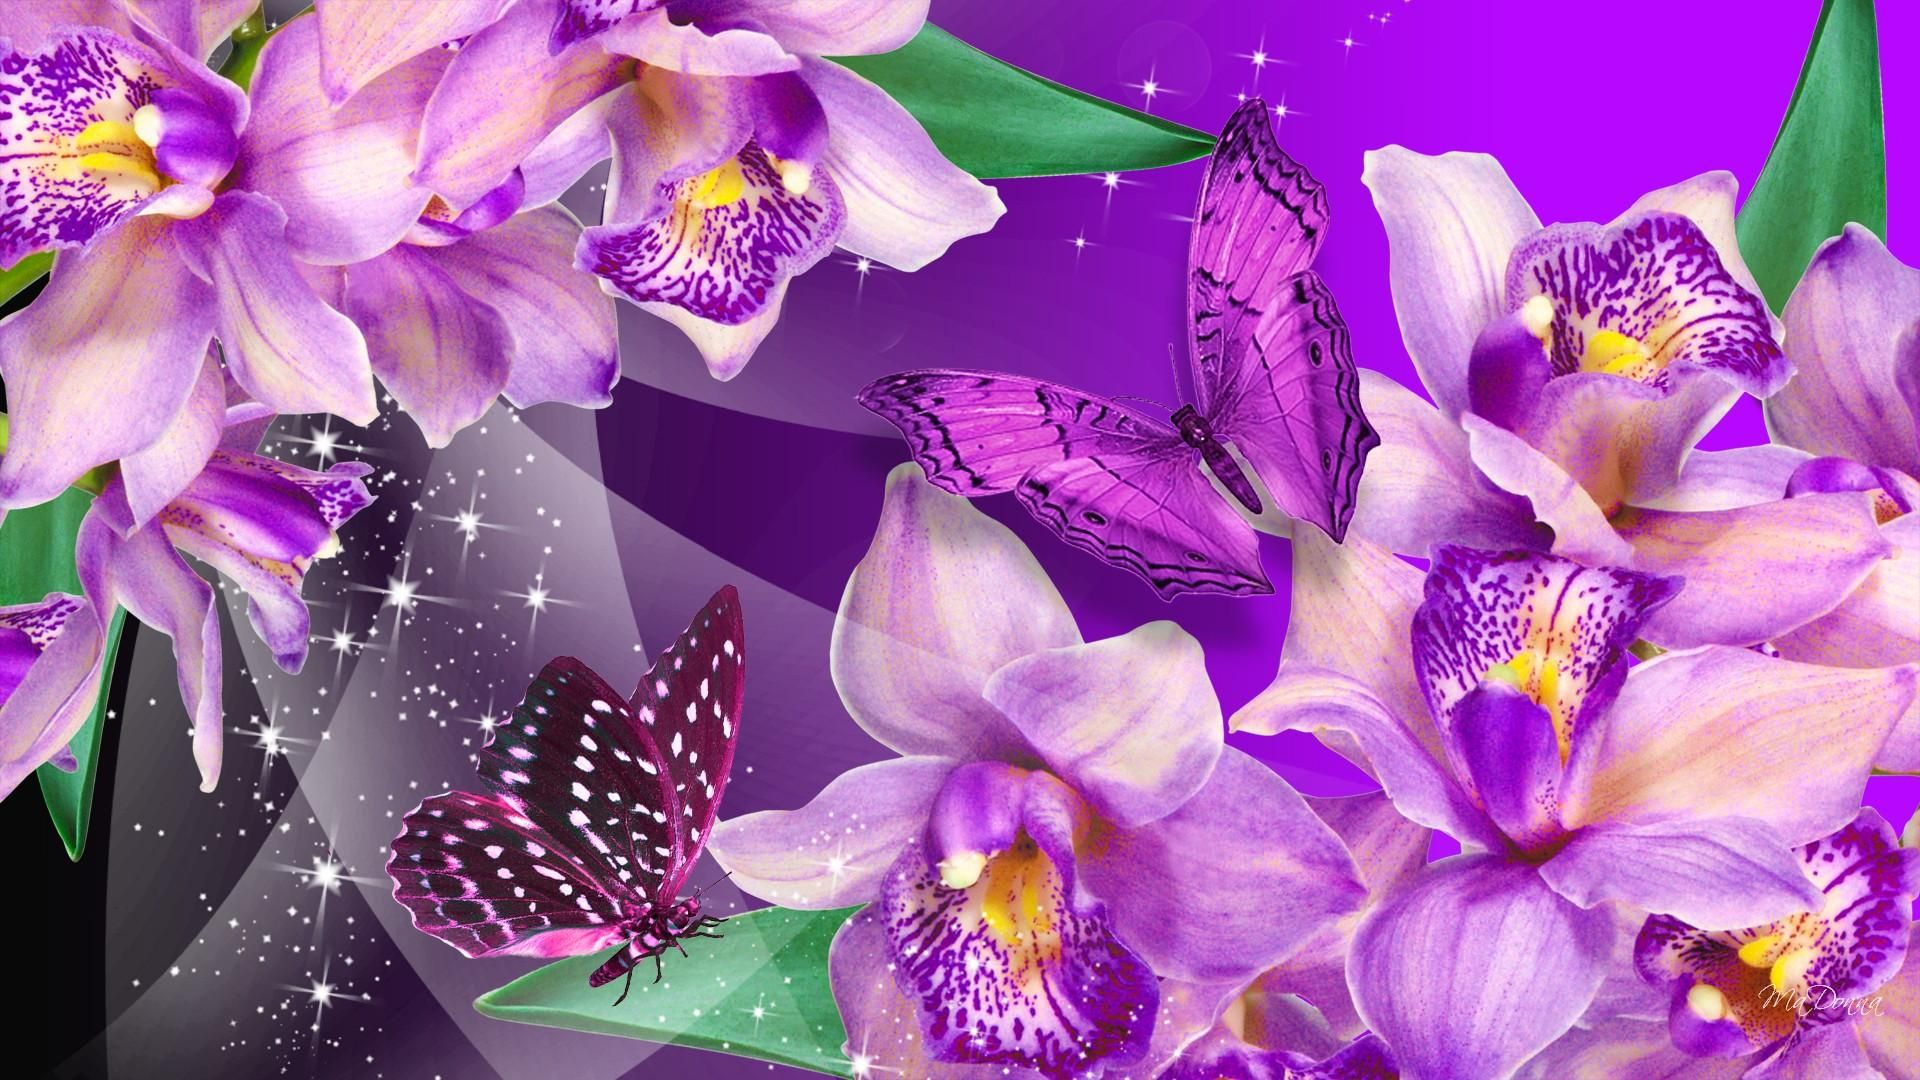 Wallpaper download free image search hd - Purple Butterfly Are Free To Fly Hd Orchid Butterfly Dance Wallpaper